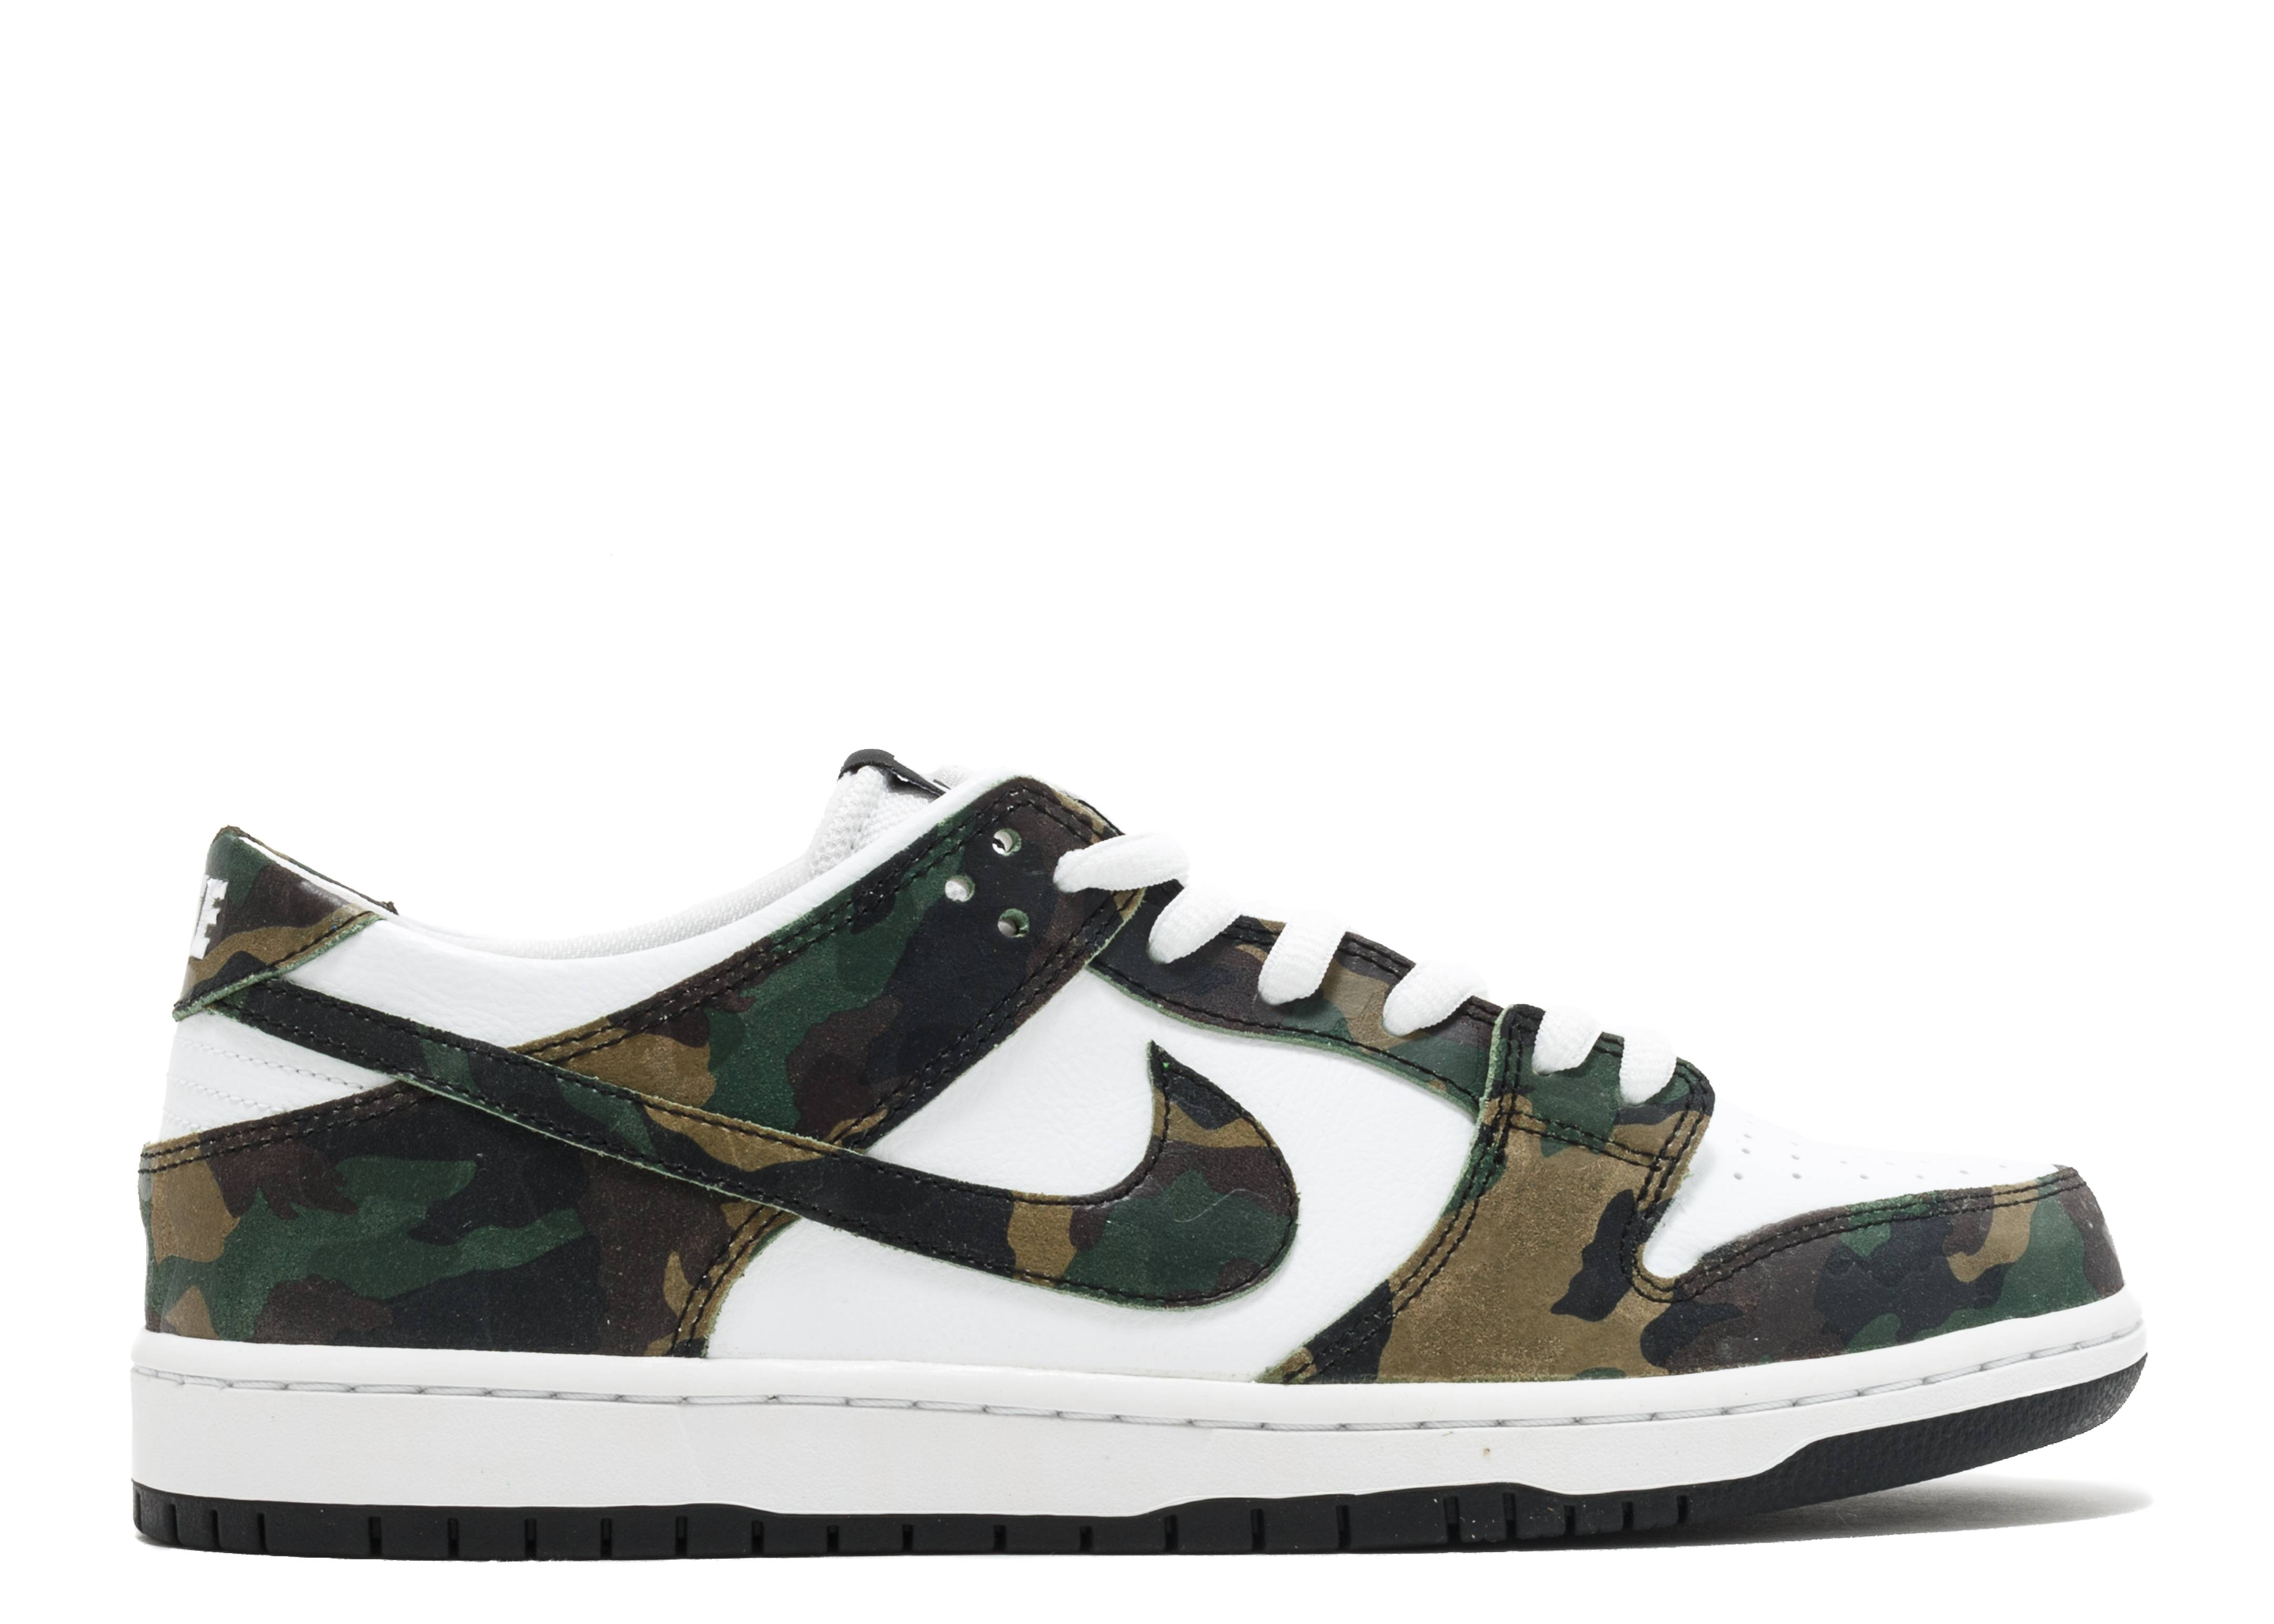 nike sb zoom dunk low pro camo nike 854866 331. Black Bedroom Furniture Sets. Home Design Ideas